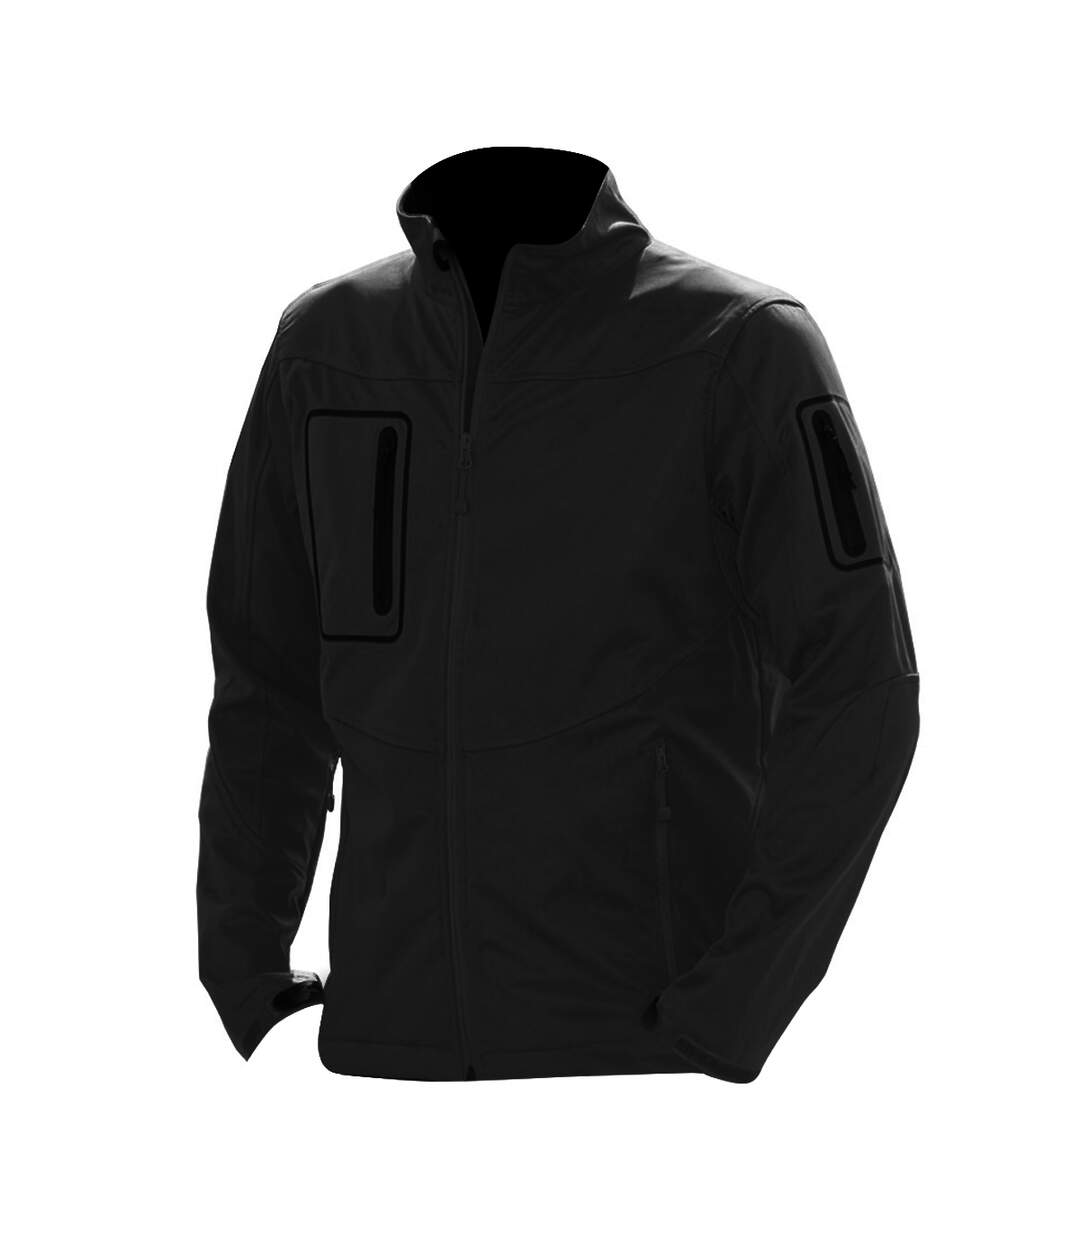 Russell Mens Premium Sport Shell 5000 Performance Jacket (3 Layer) (Black) - UTBC2733